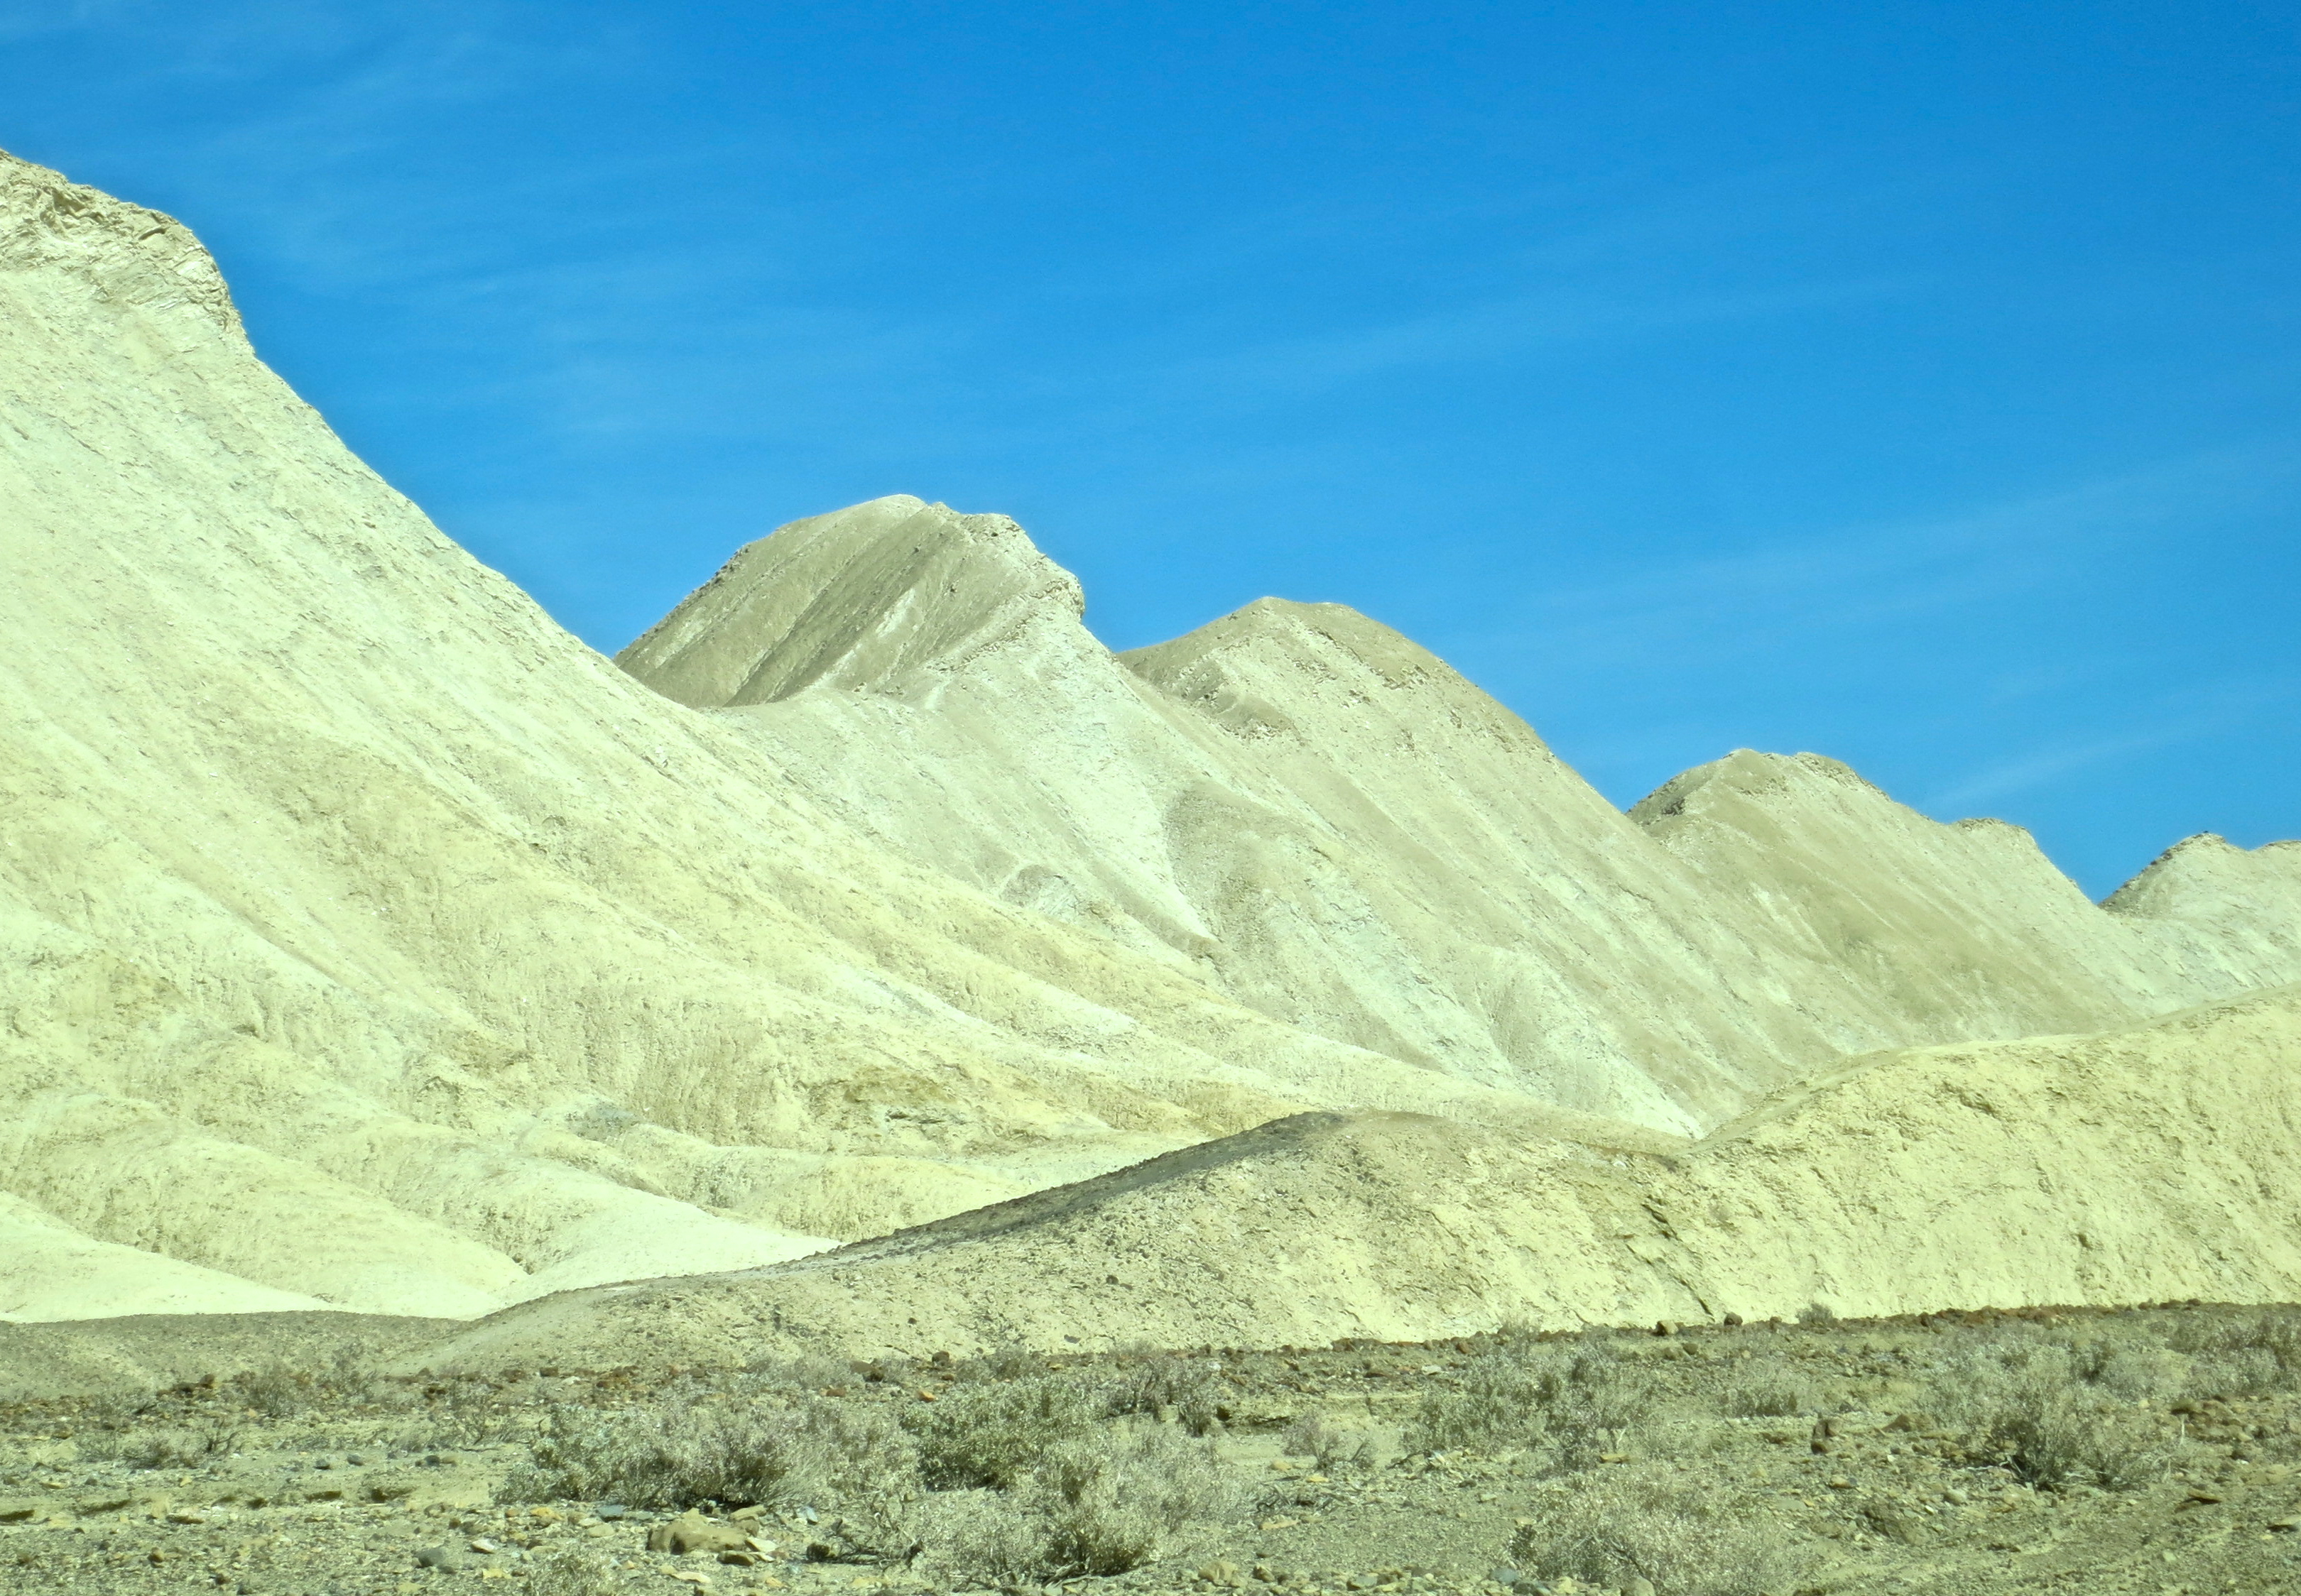 Dramatic view along Twenty Mule Team Canyon road in Death Valley.